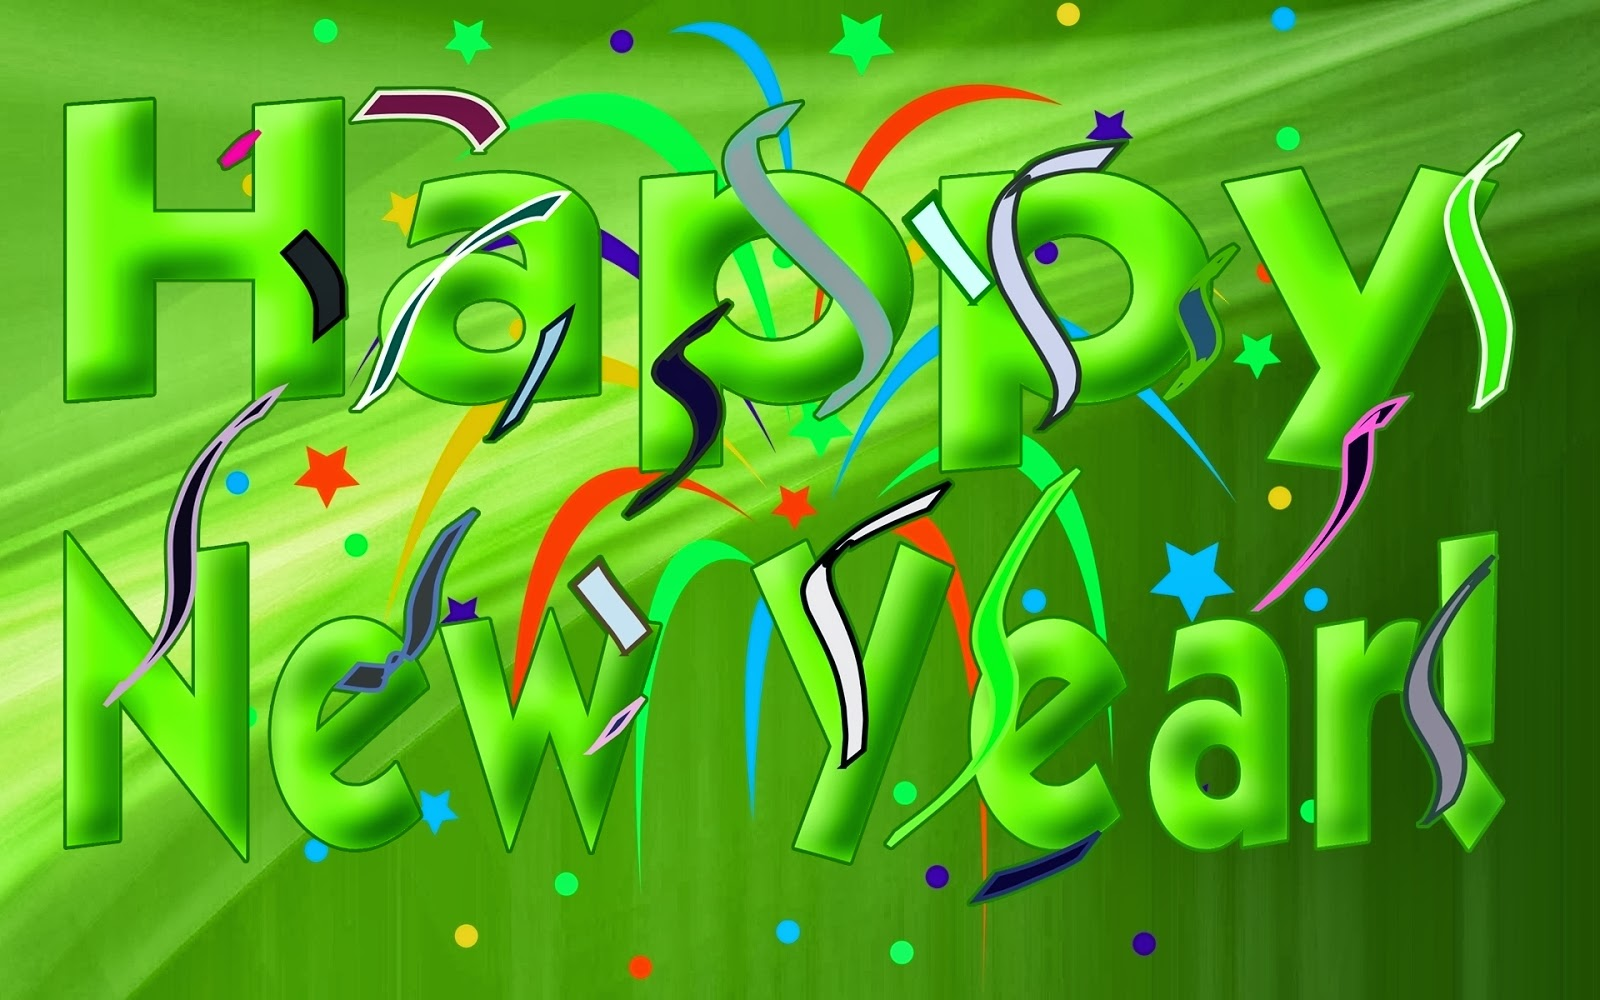 Happy New Year Images 2014 Happy New Year 2014 Wallpapers.7 Happy New Year Images Advance 2014